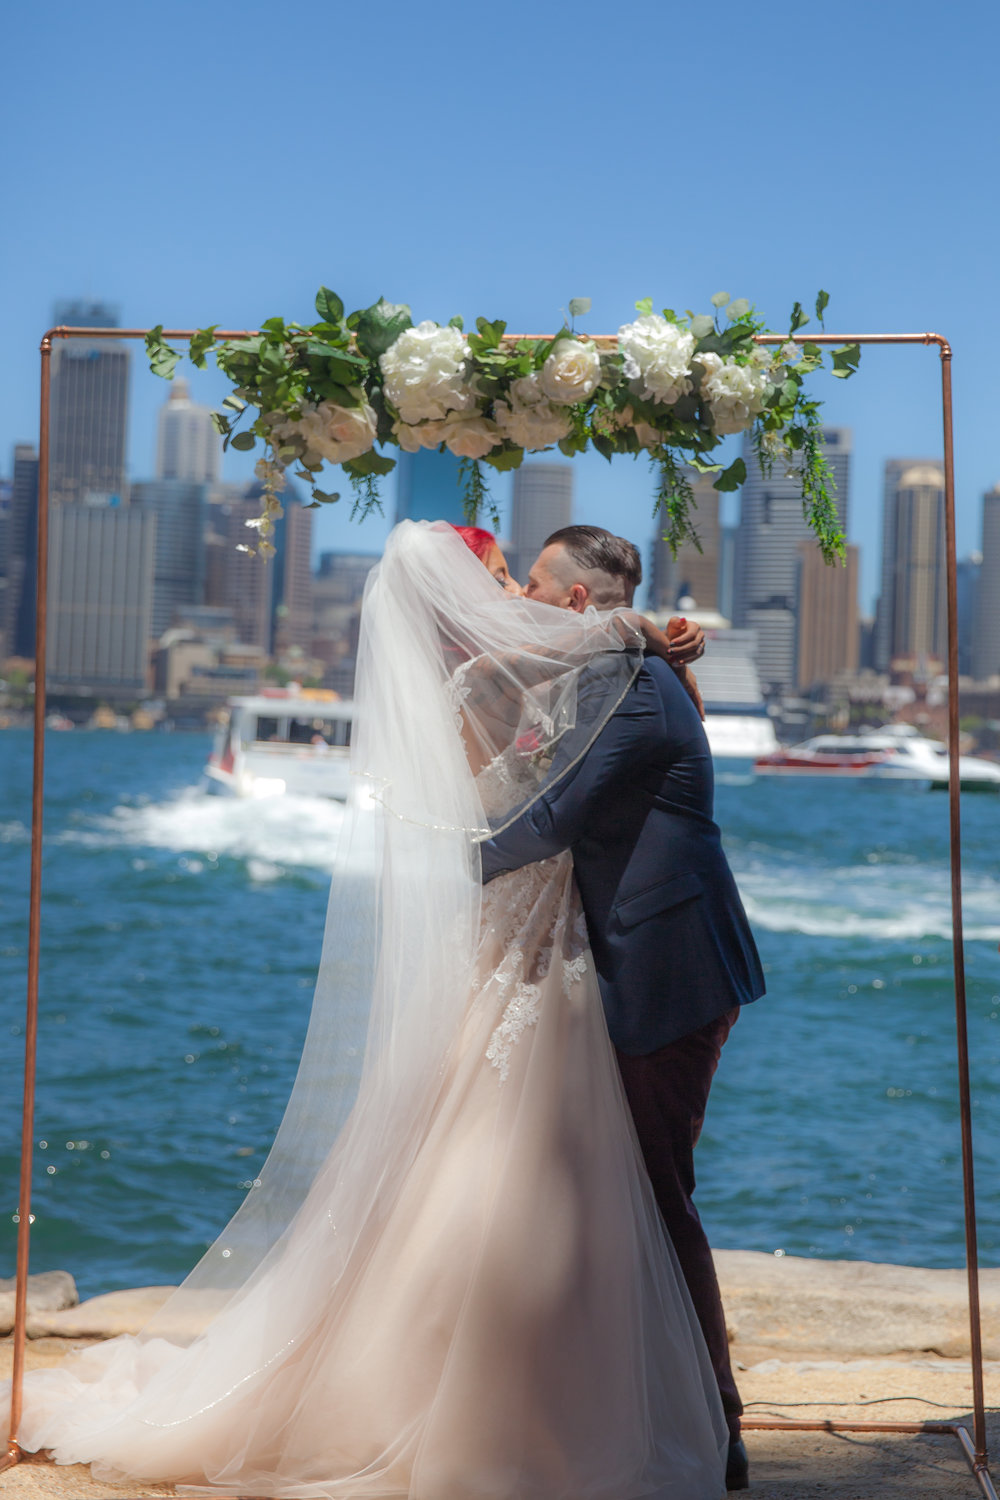 I'm Yours - Everything you need for a beautiful break away, a stylish wedding and celebration with your most important people.  Enjoy the beautiful hotel, a romantic ceremony and beautiful degustation menu for just $8,999.For package inclusions click here.